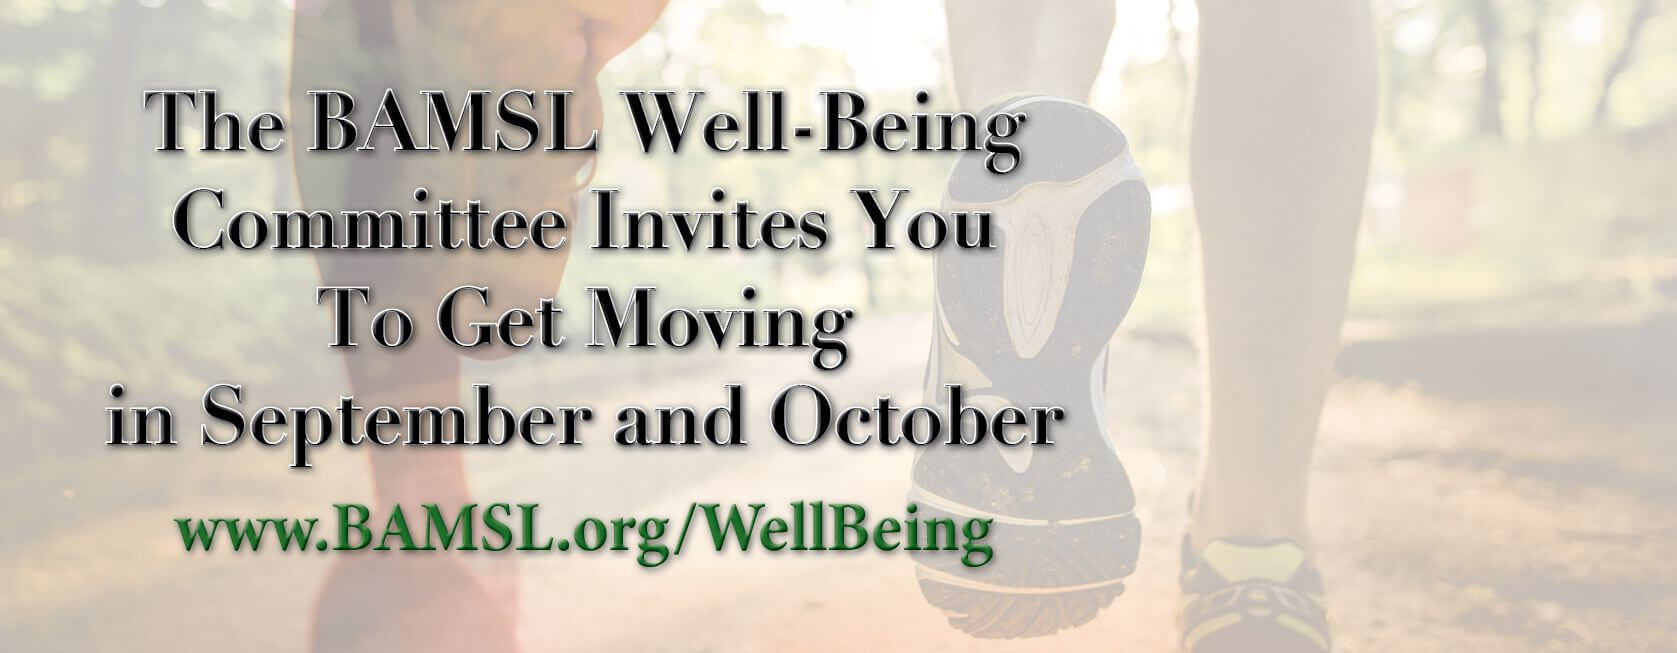 The BAMSL Well-Being Committee invites you to get moving in September and October